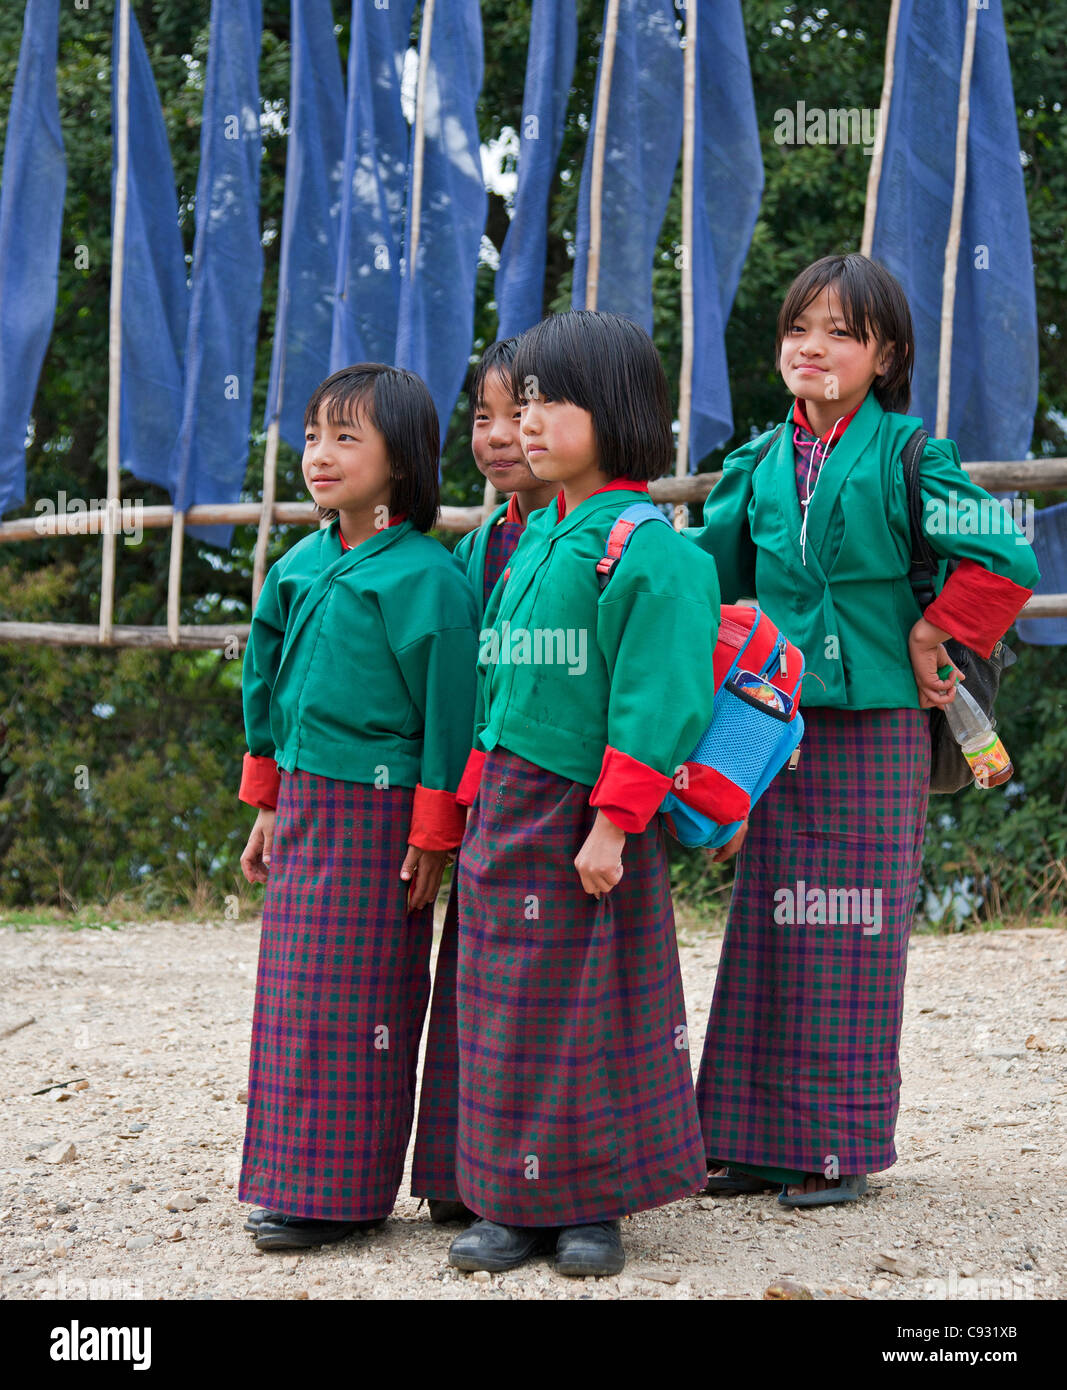 Schoolgirls on their way back from school near Mongar, a small hilltop town in East Bhutan. - Stock Image